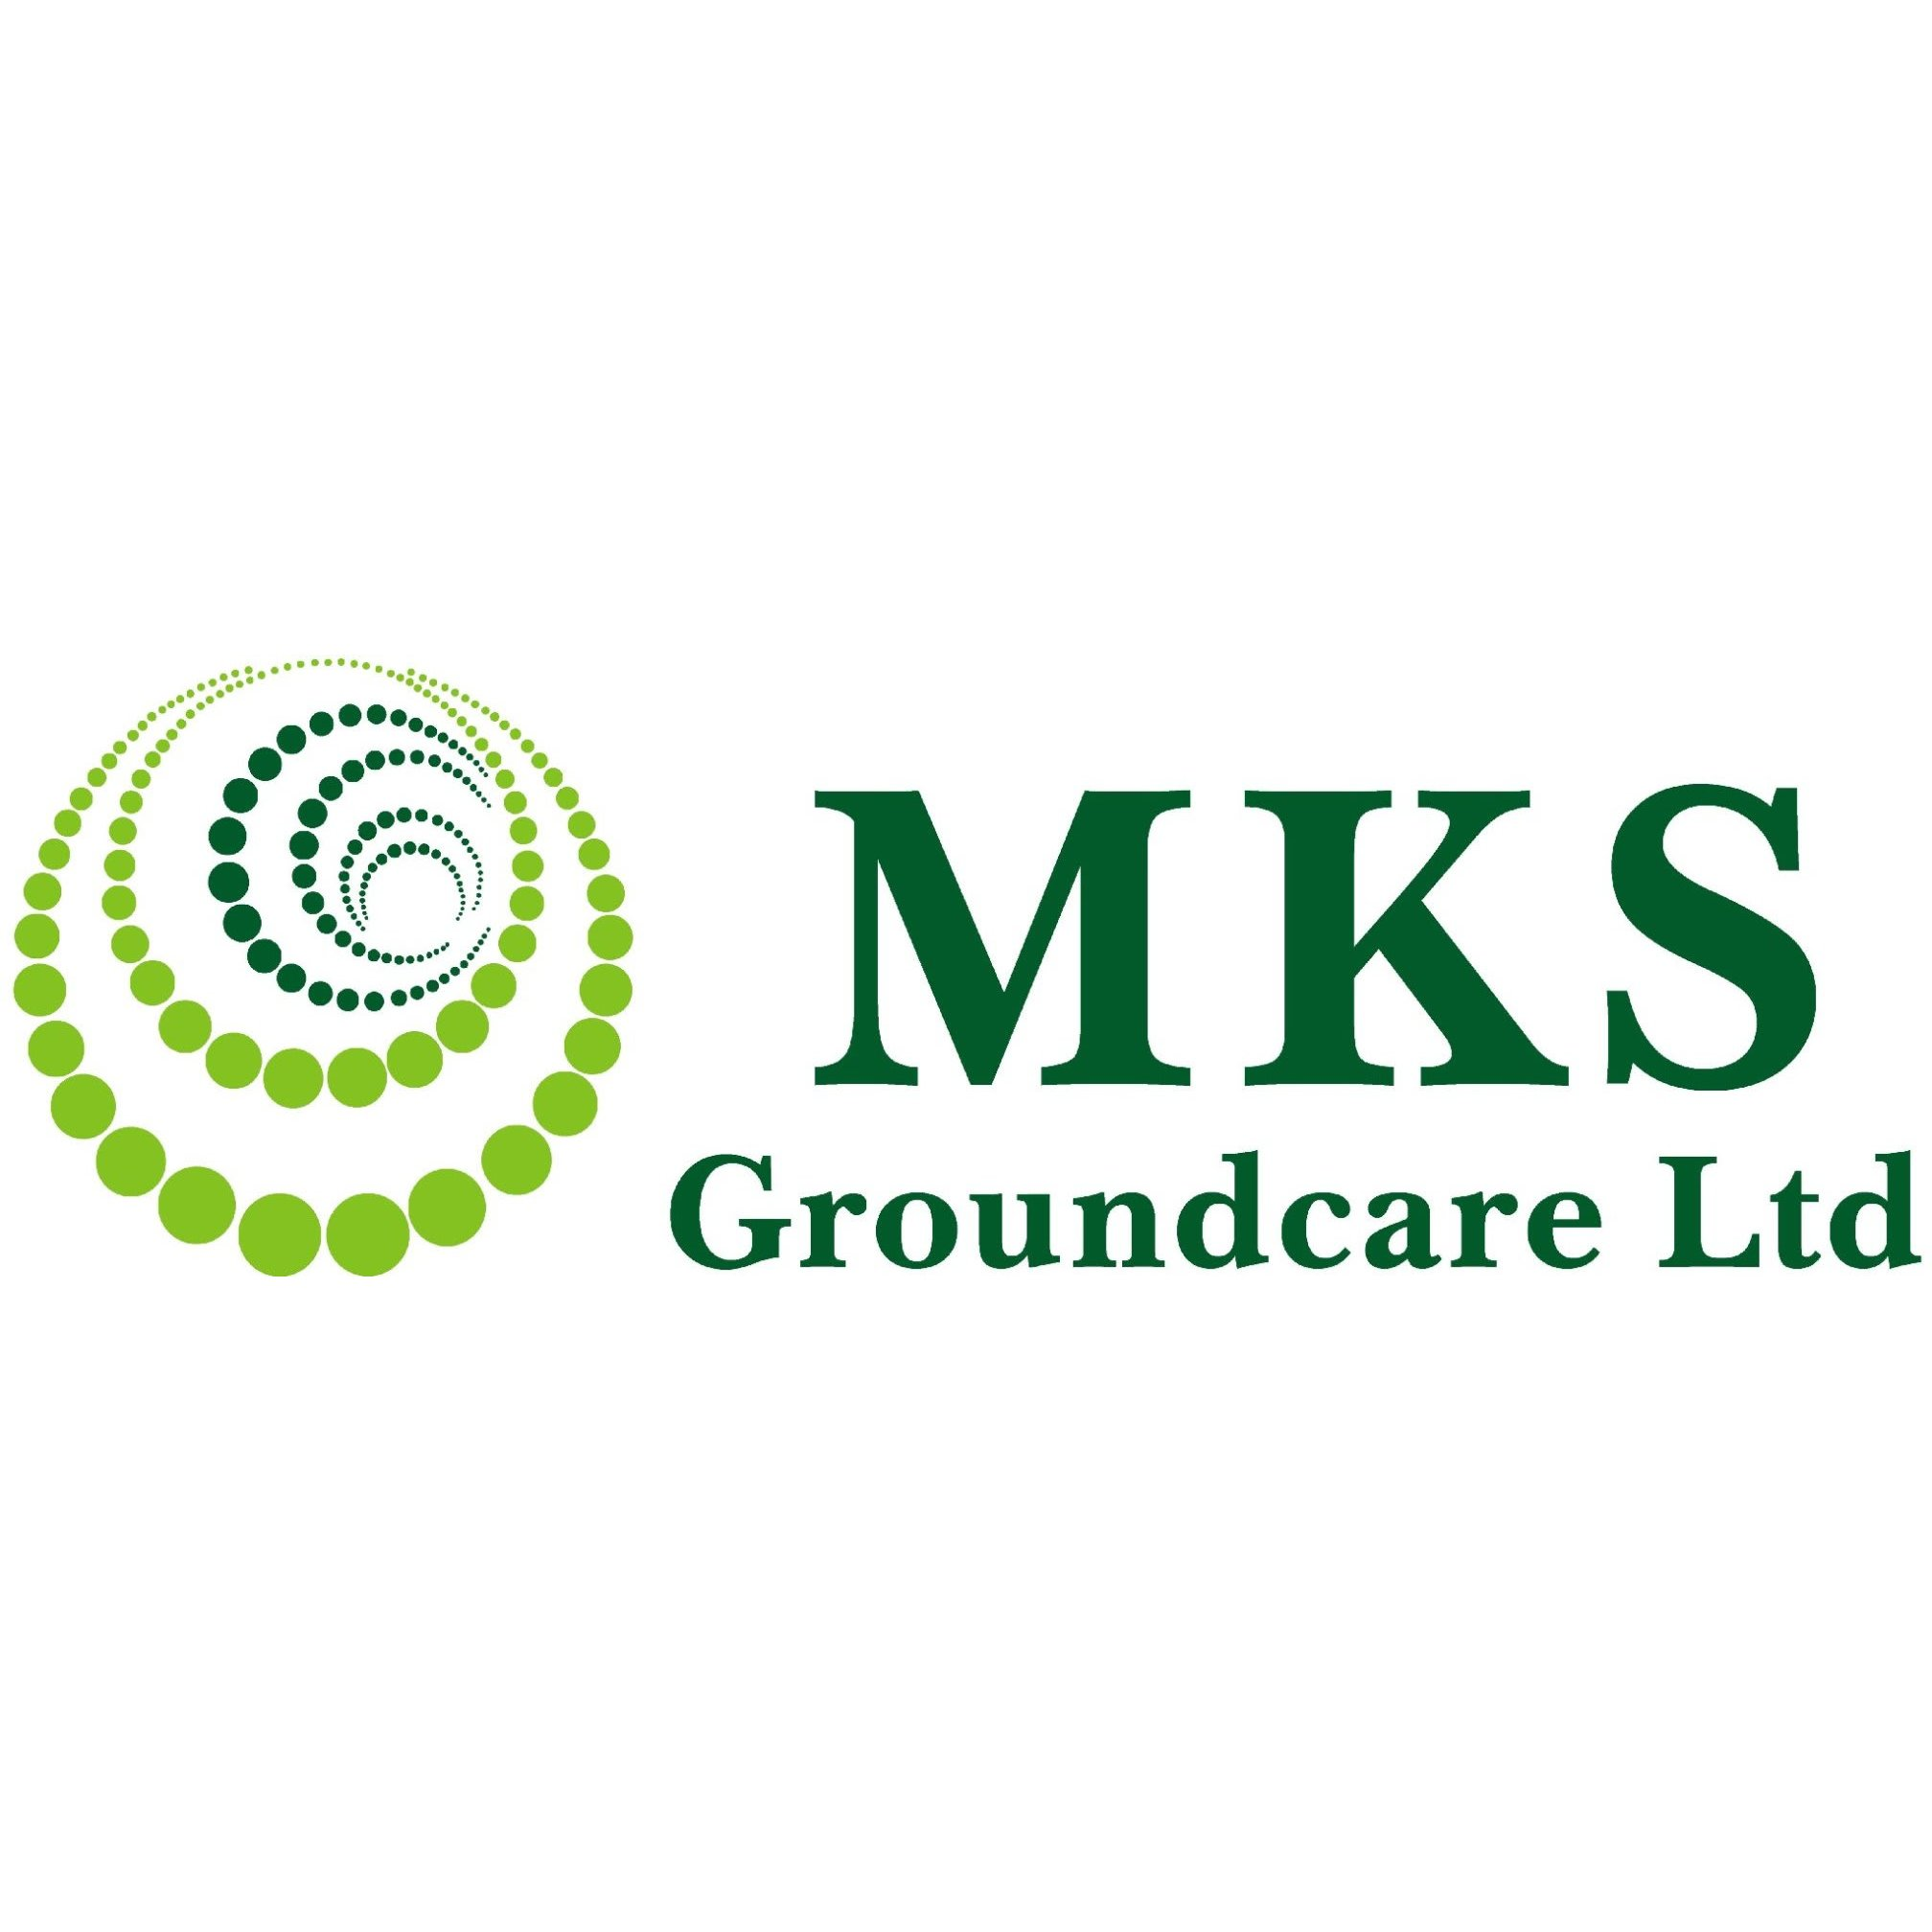 MKS Groundcare Ltd - Gainsborough, Lincolnshire DN21 5QB - 07780 450248 | ShowMeLocal.com